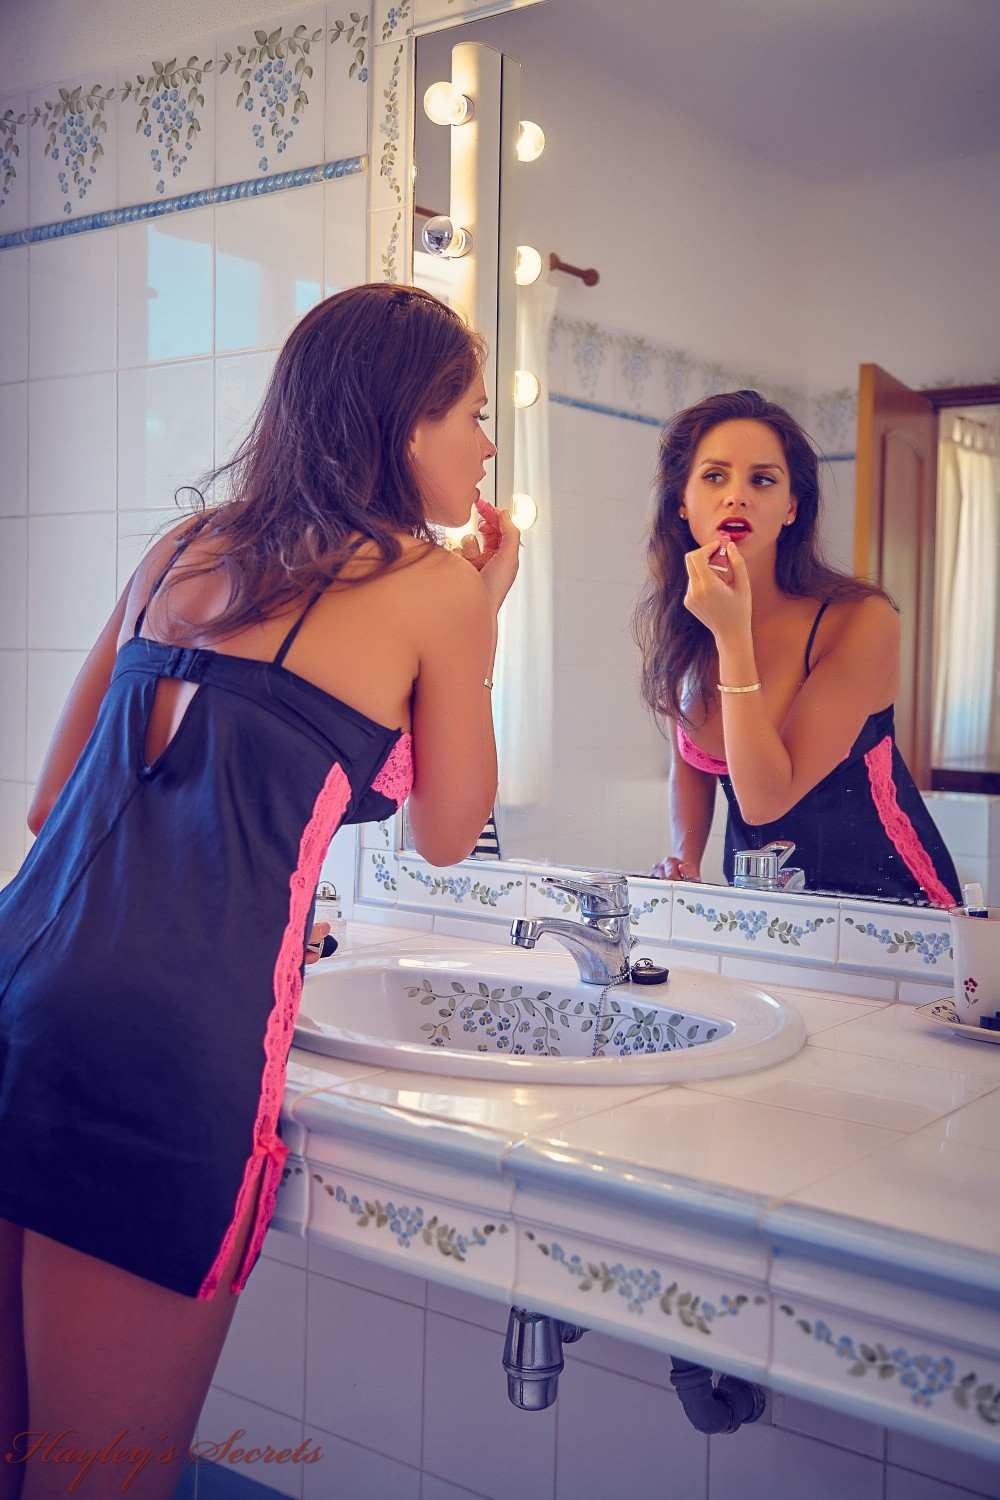 12 Candid Pics Of Adele Taylor Putting On Makeup In The -7641